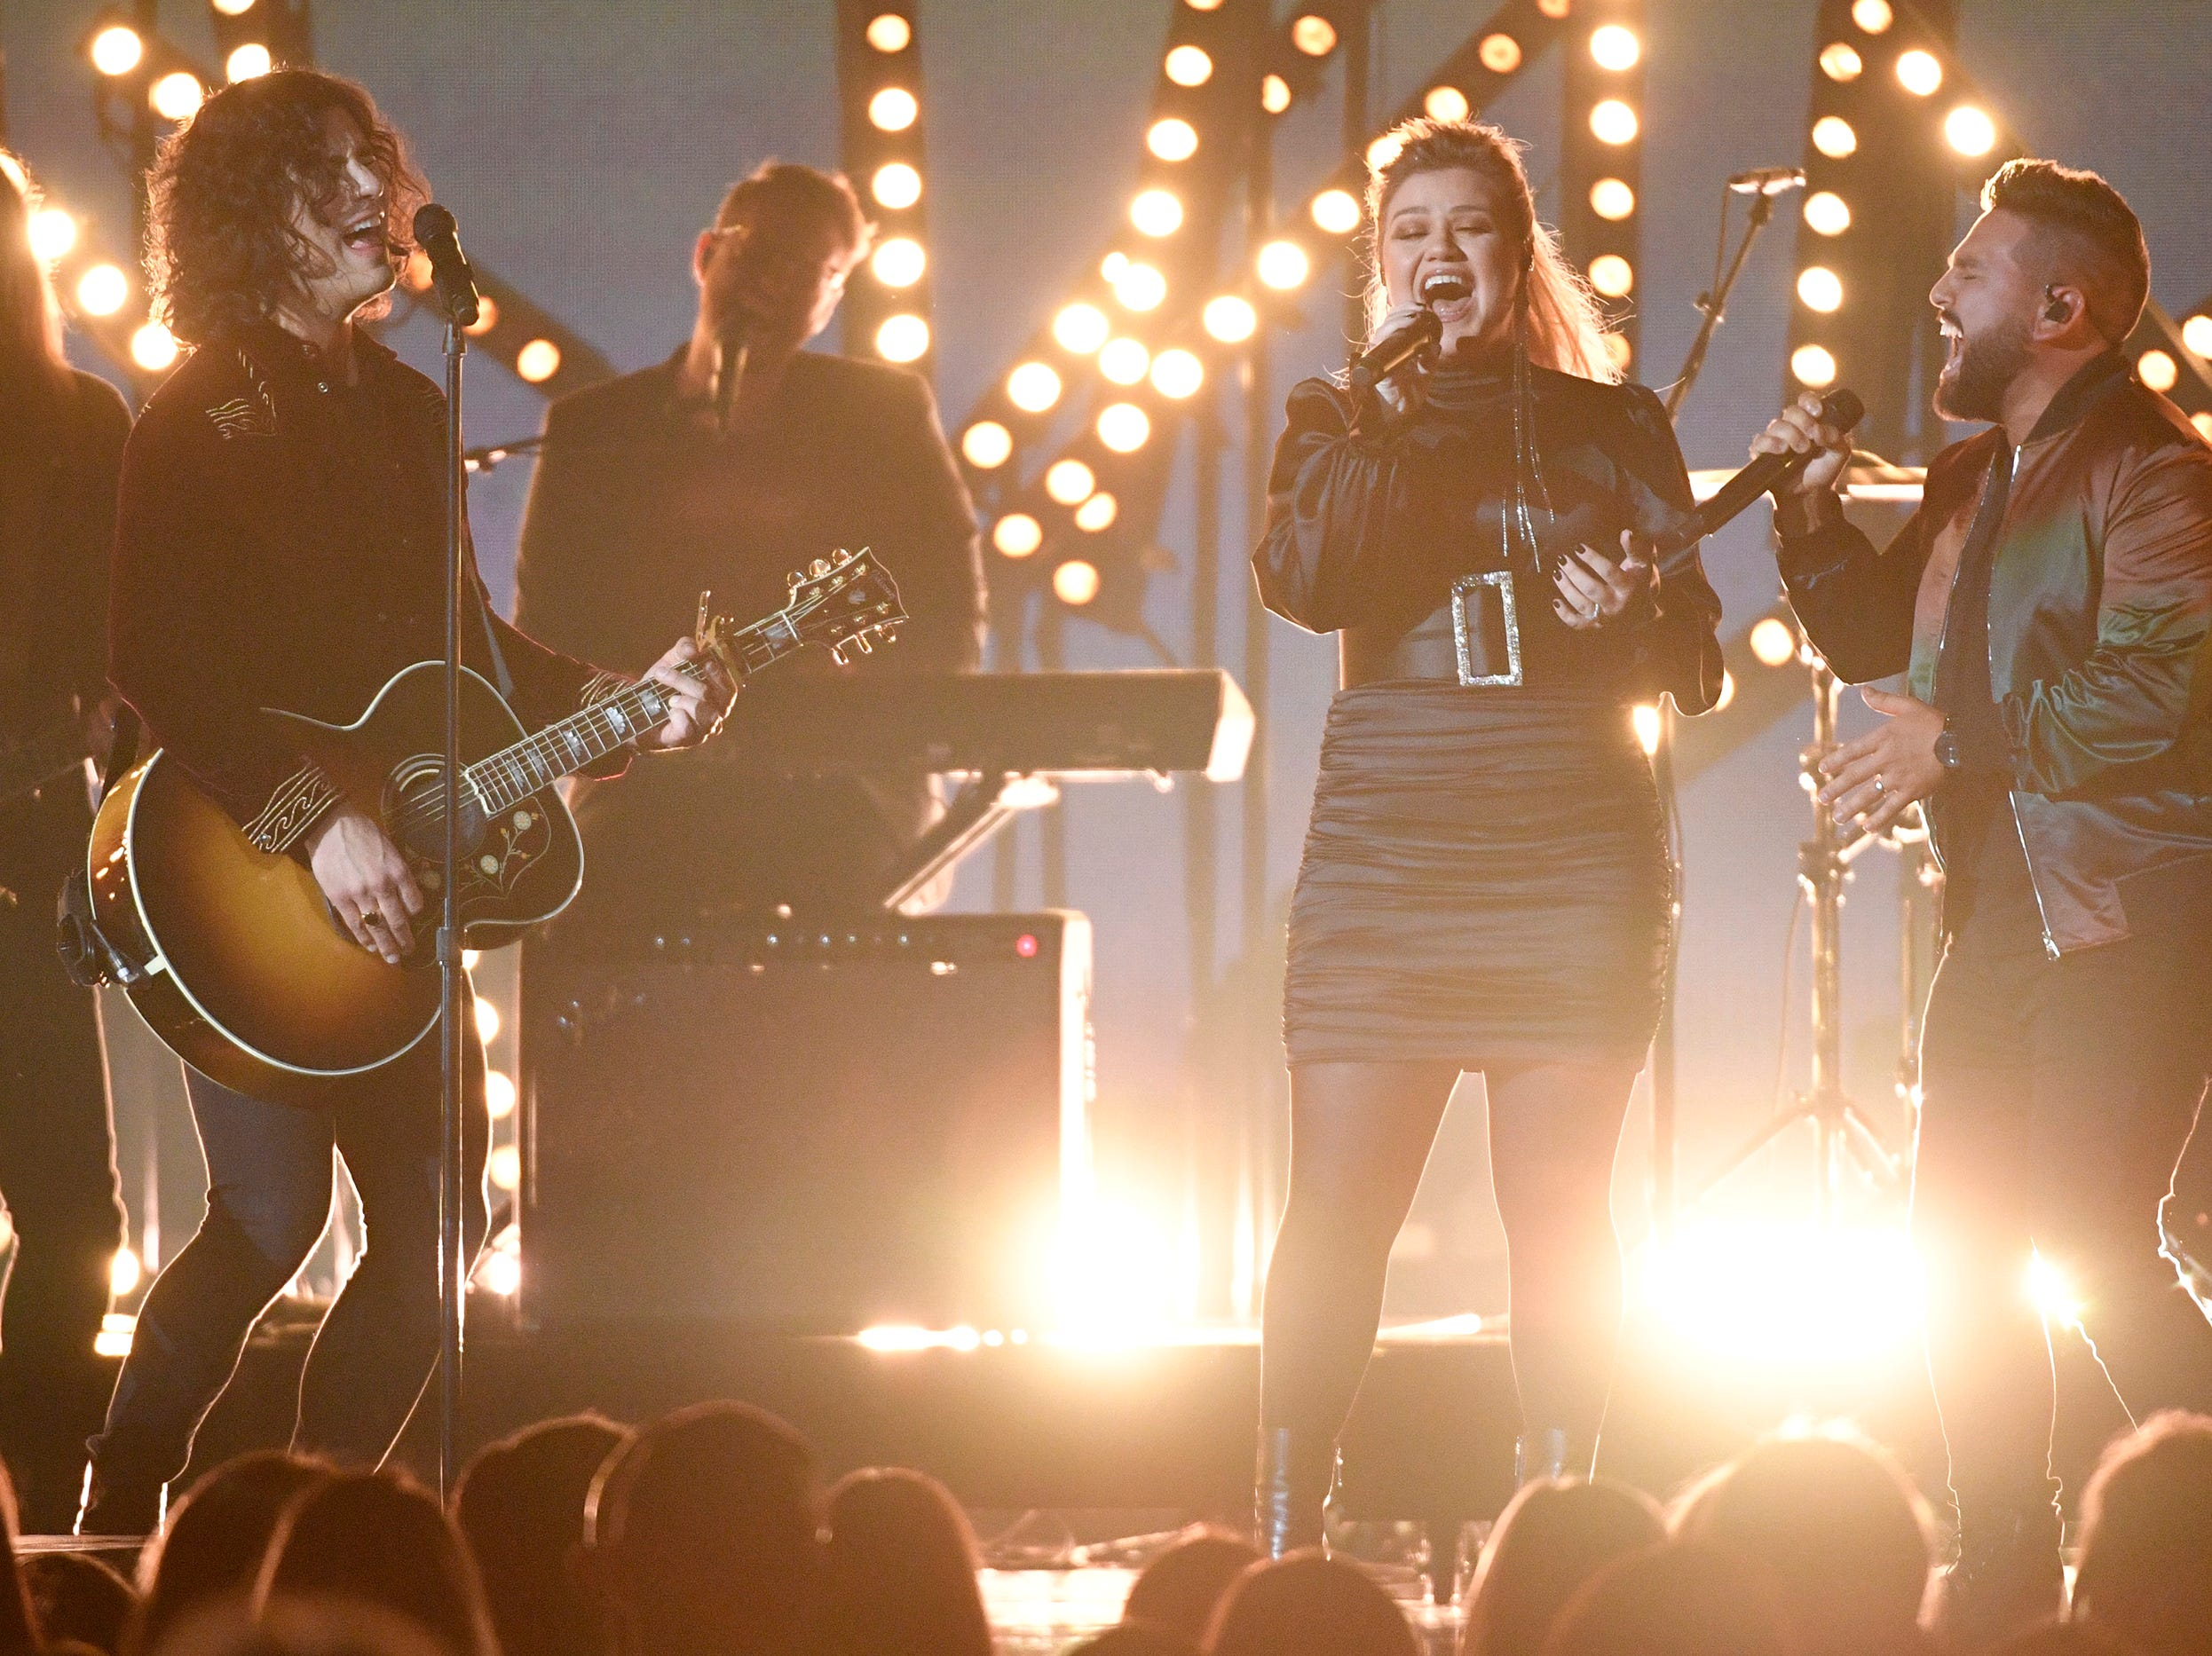 Kelly Clarkson, center, with Dan Smyers, left, and Shay Mooney of Dan + Shay, performs during the 54TH Academy of Country Music Awards Sunday, April 7, 2019, in Las Vegas, Nev.